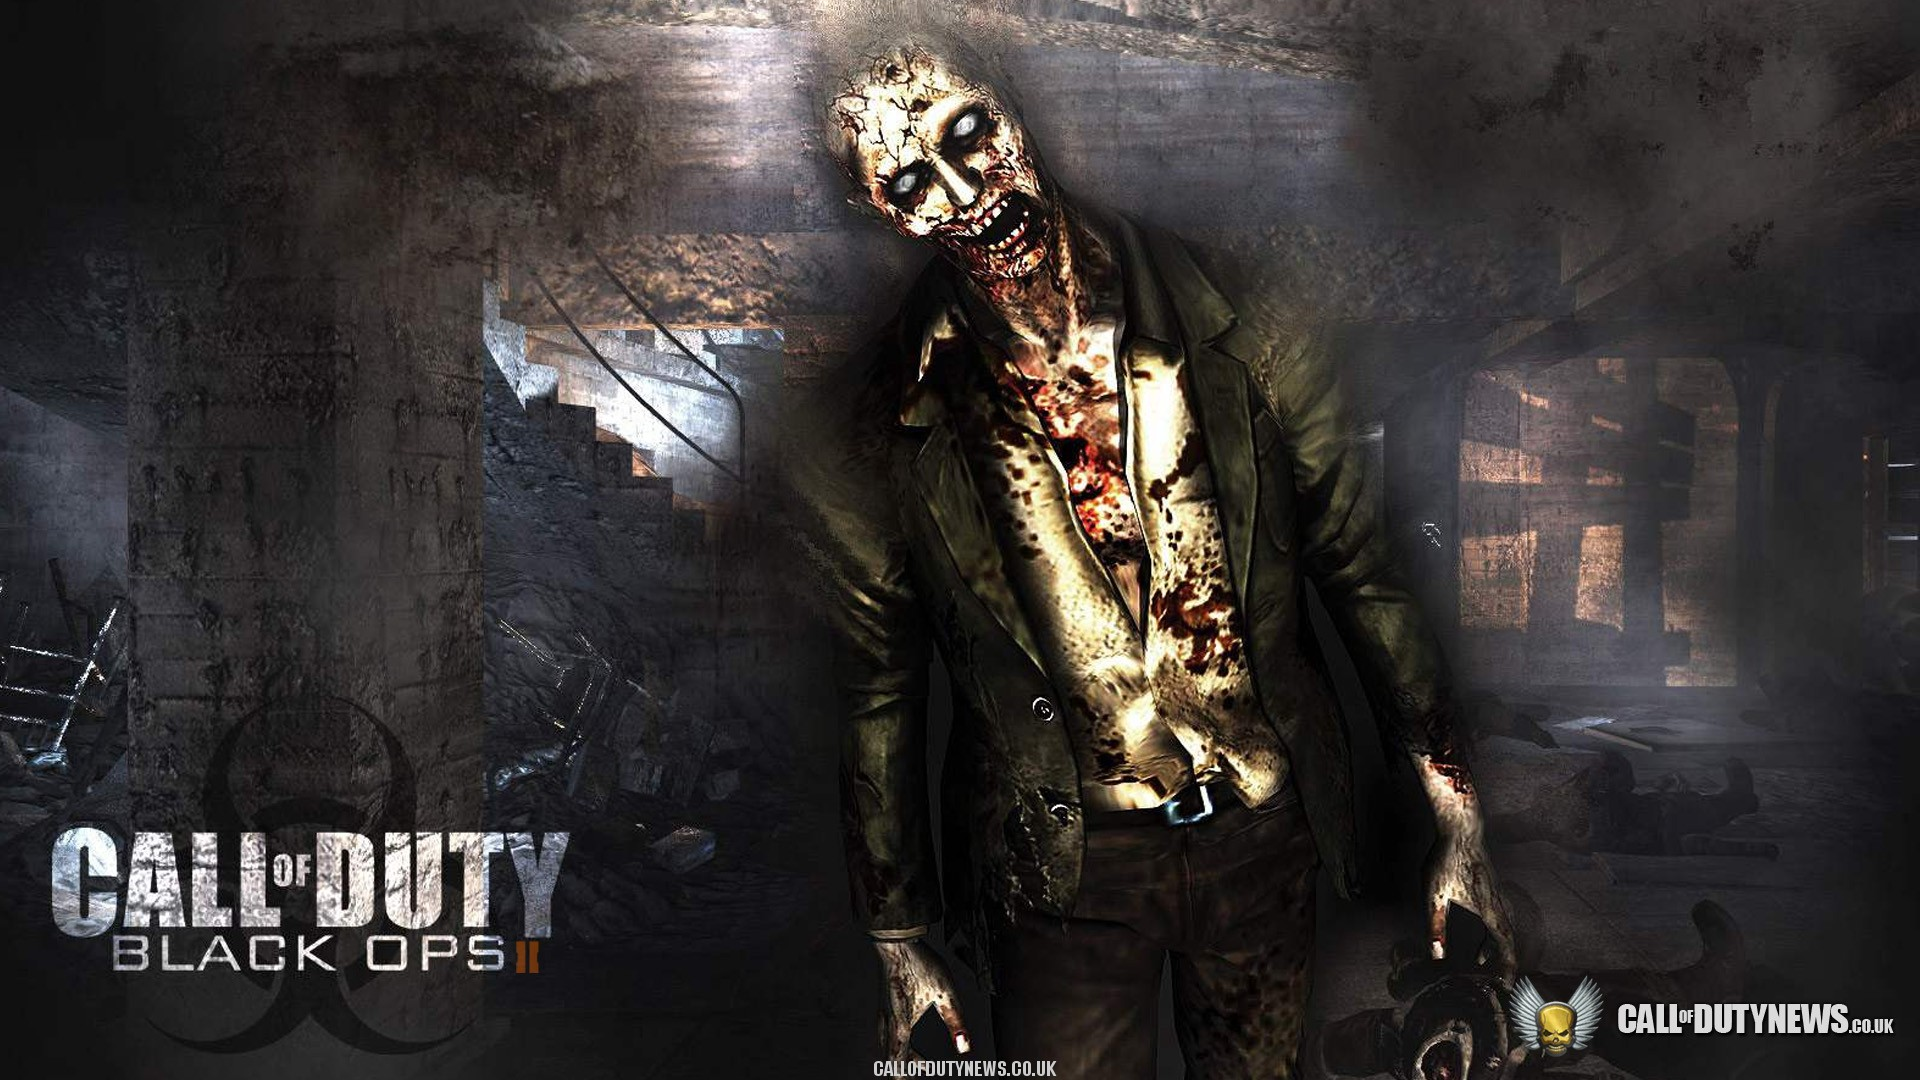 Free Download Black Ops 2 Zombies Wallpaper Danasrfhtop 1920x1080